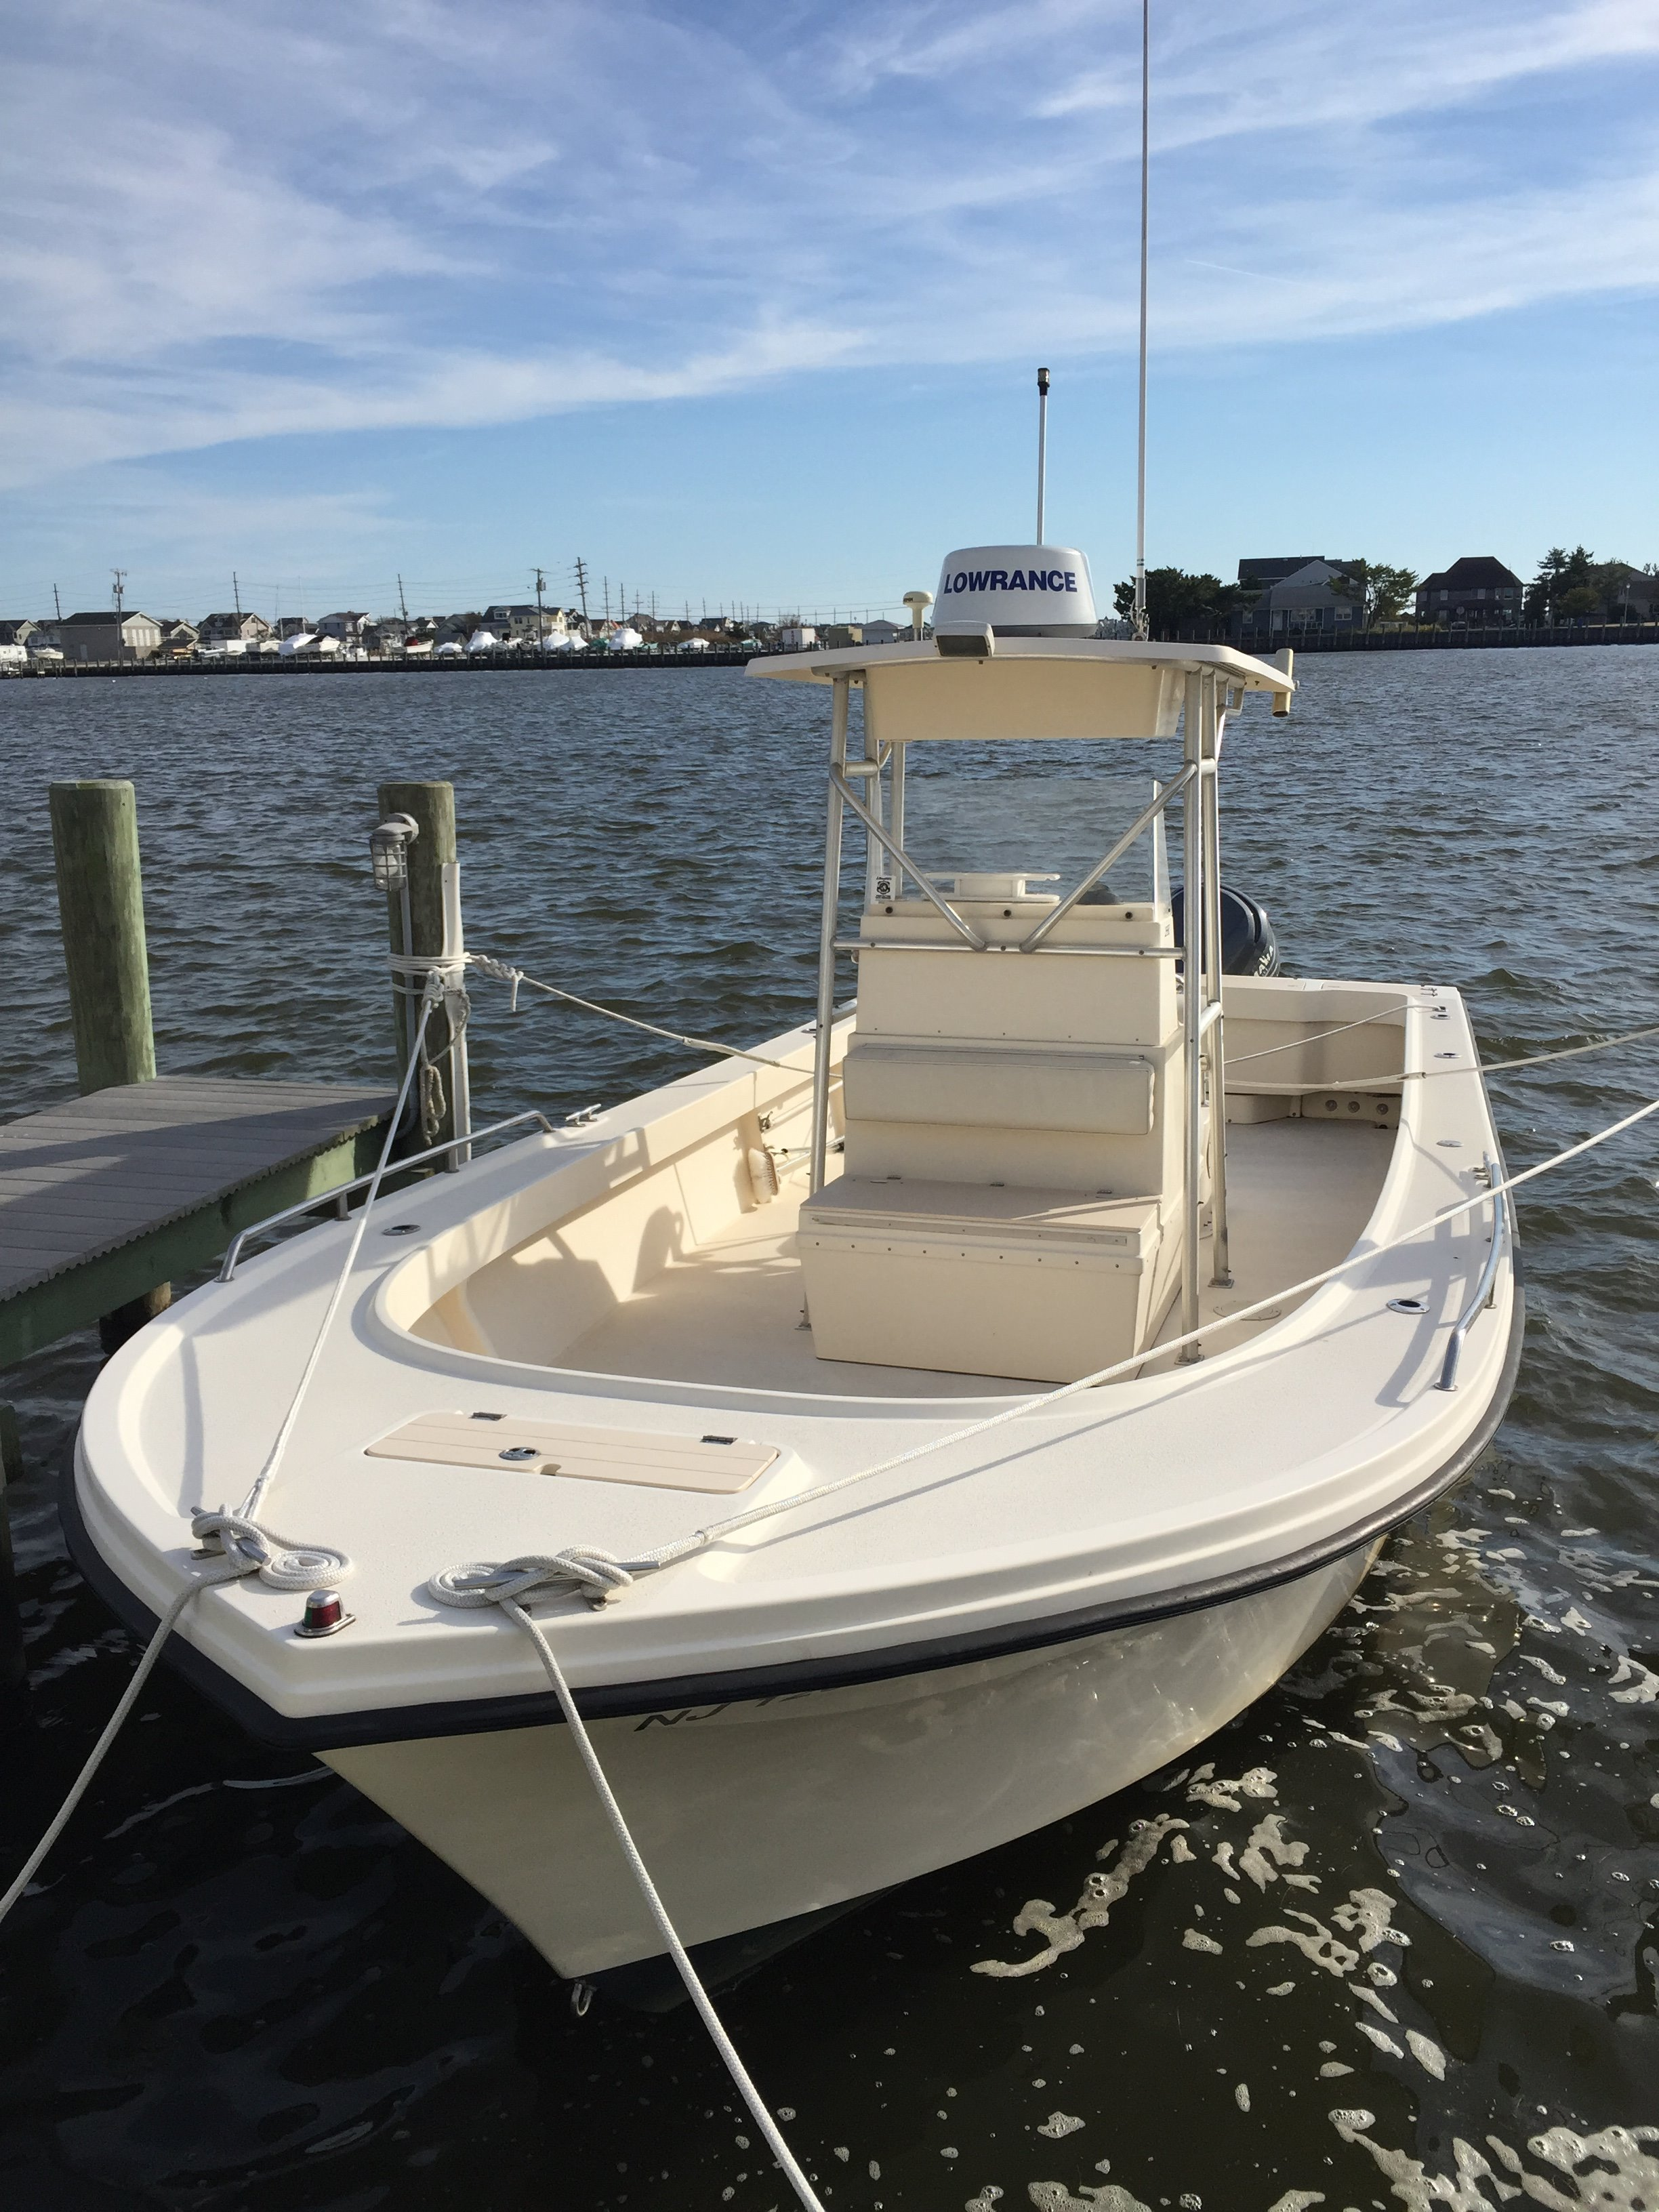 Parker boats for sale in New Jersey - Boat Trader